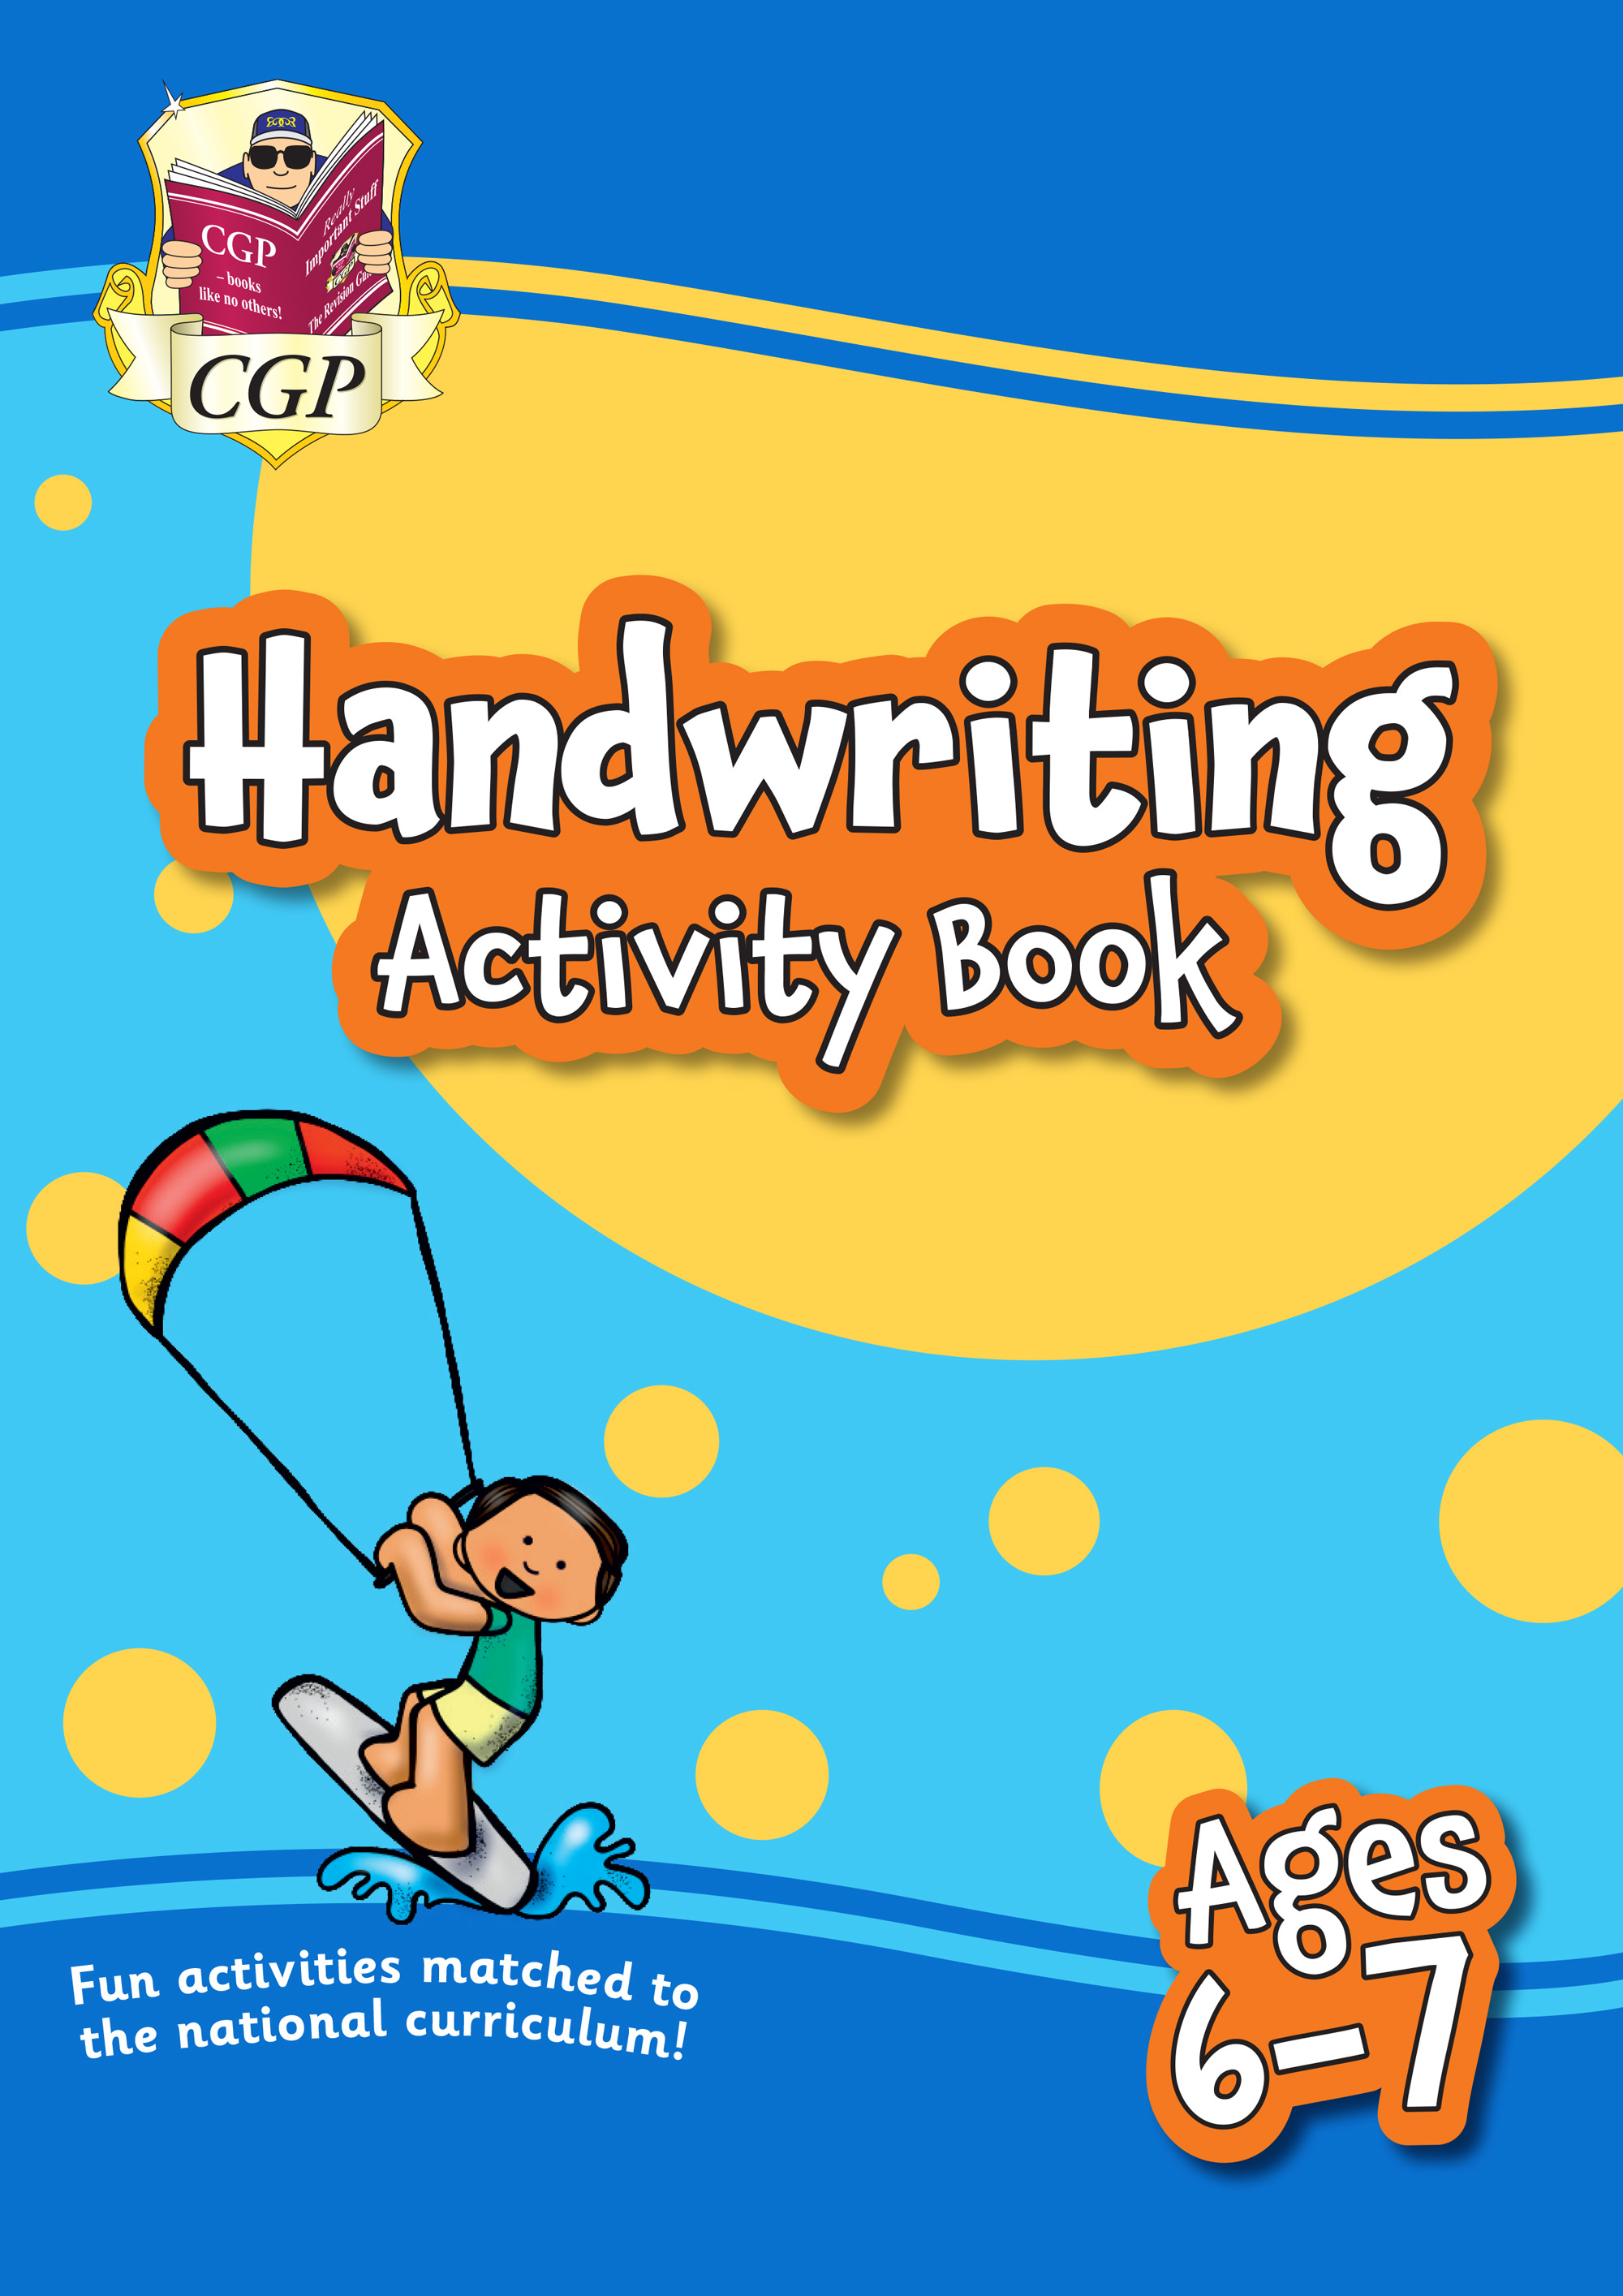 EPF2H11 - New Handwriting Home Learning Activity Book for Ages 6-7